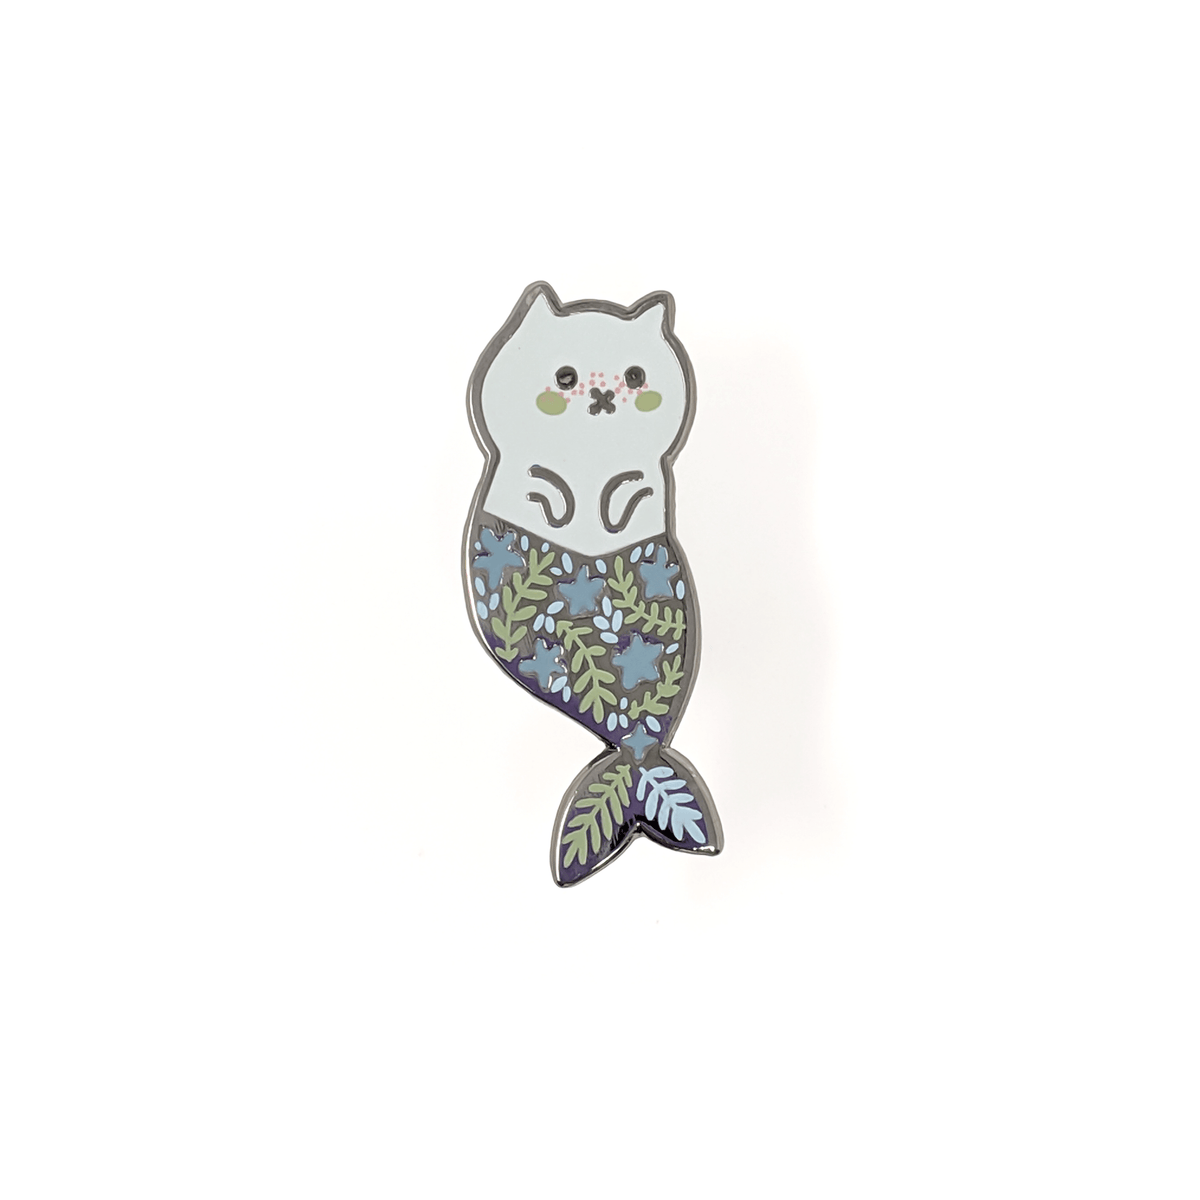 SECONDS SALE! Mercat Enamel Pin by Anna Alekseeva - Whale and Bird